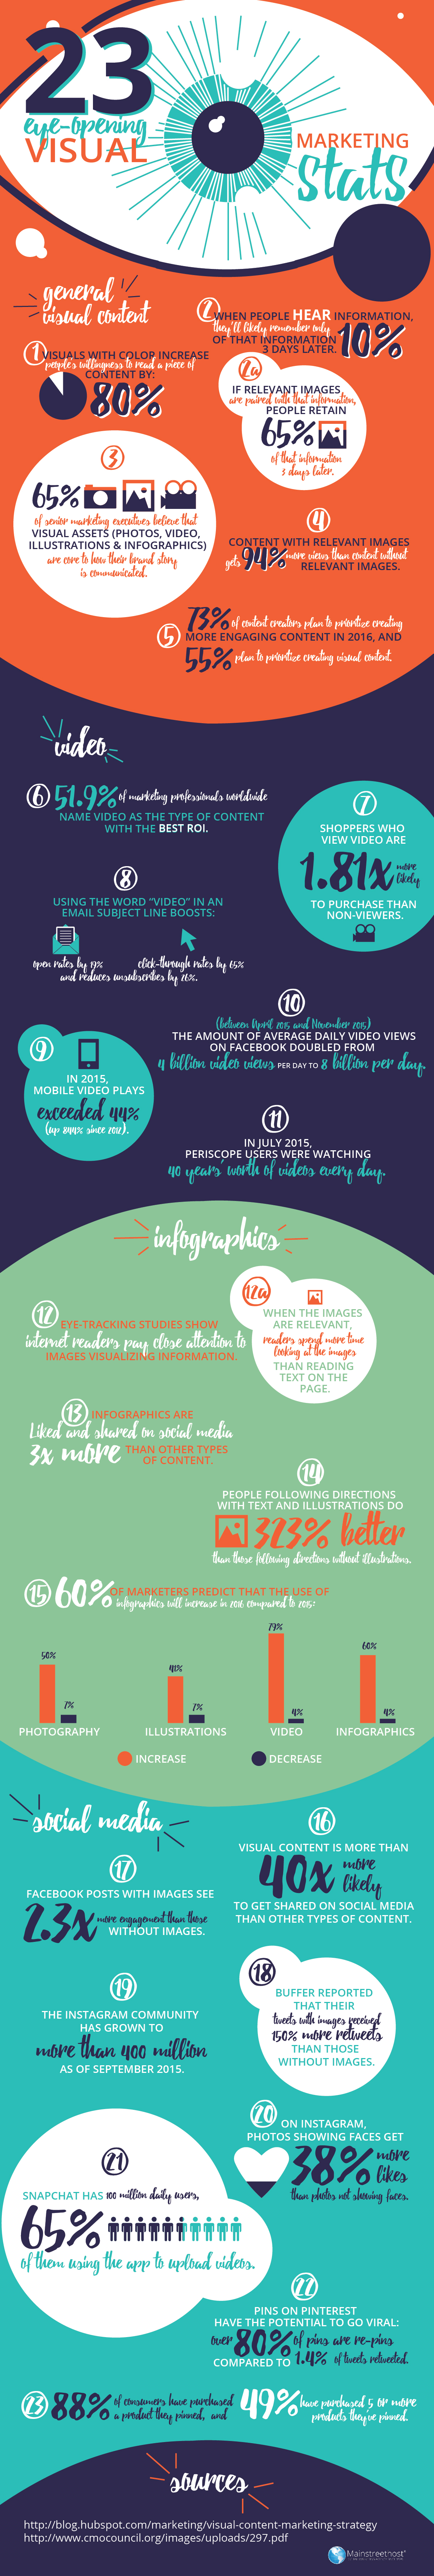 23-visual-content-stats-infographic-1.jpg